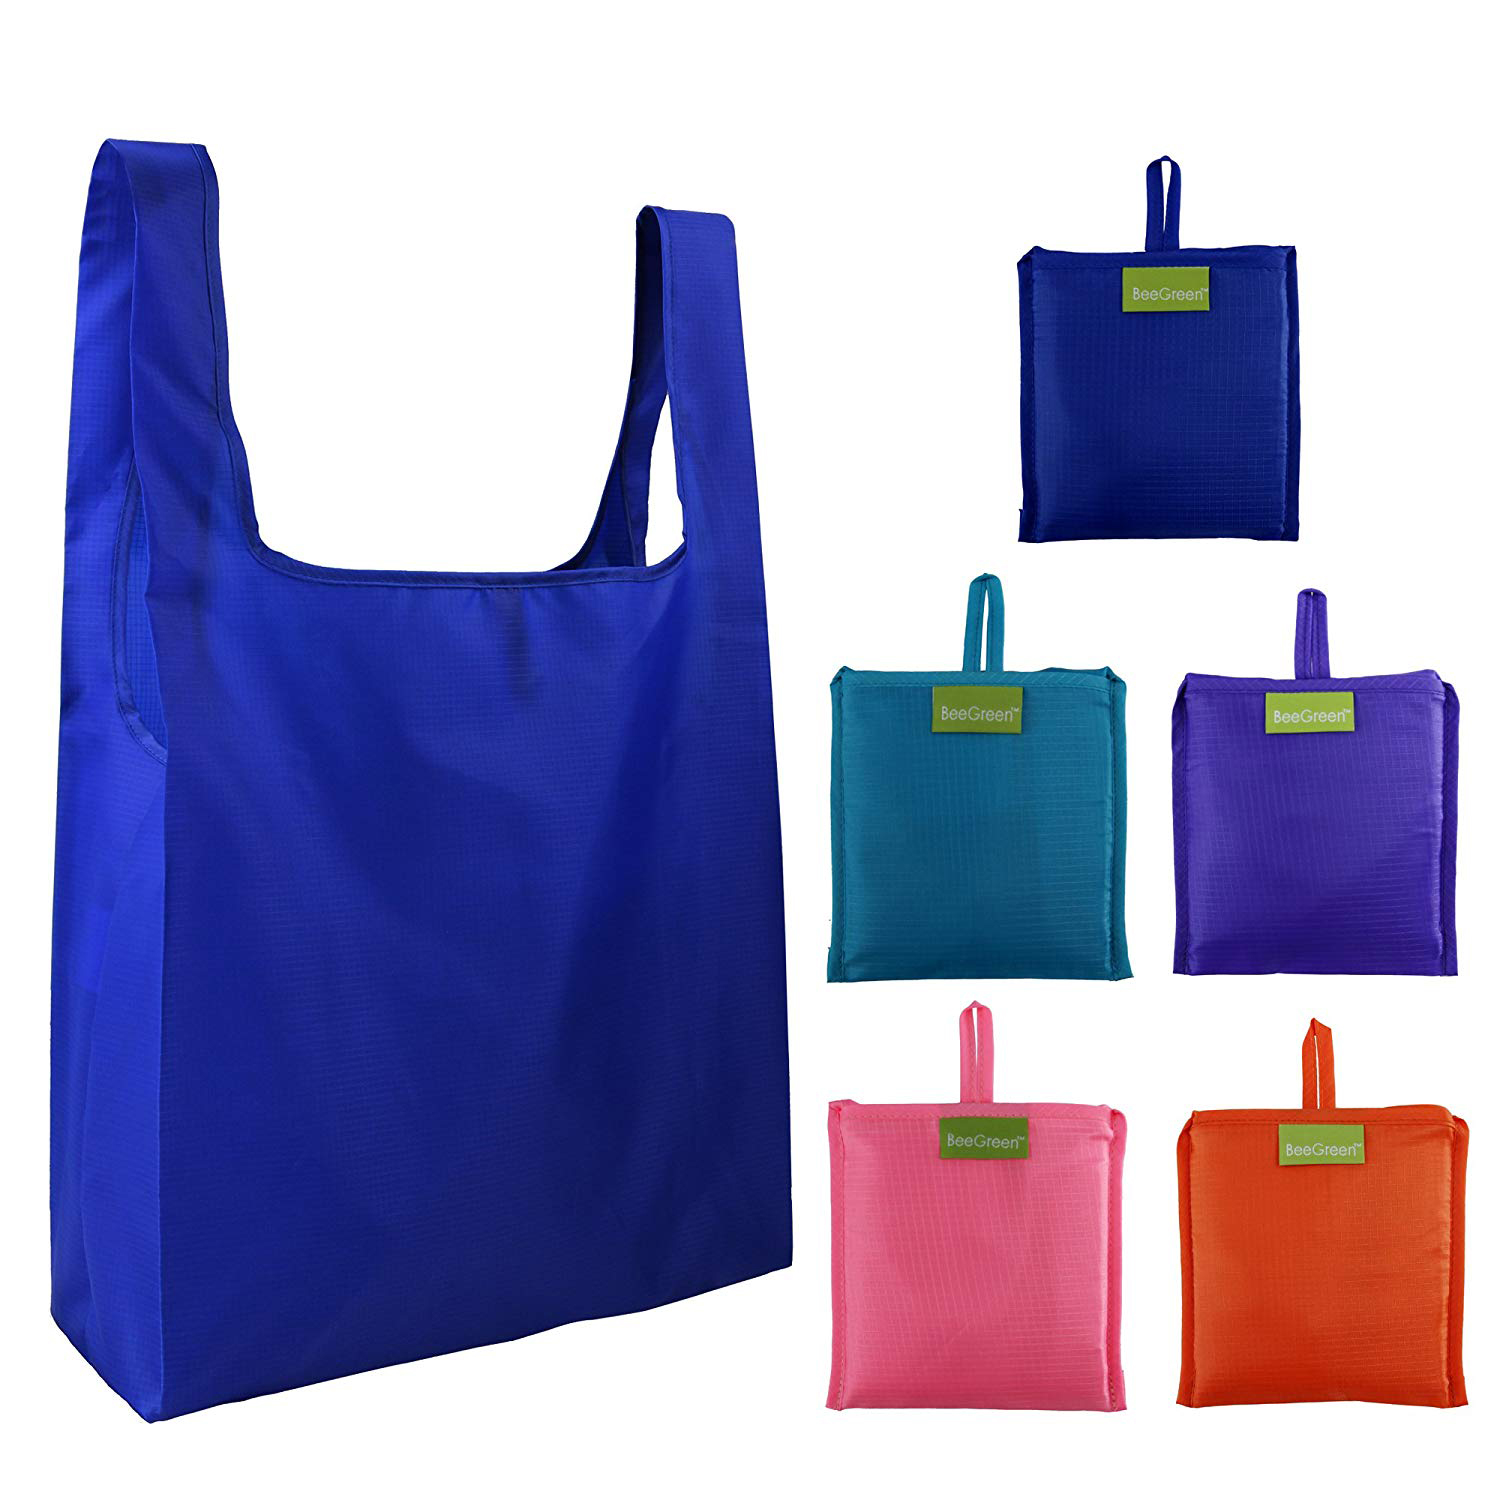 reusable-grocery-bags.jpg